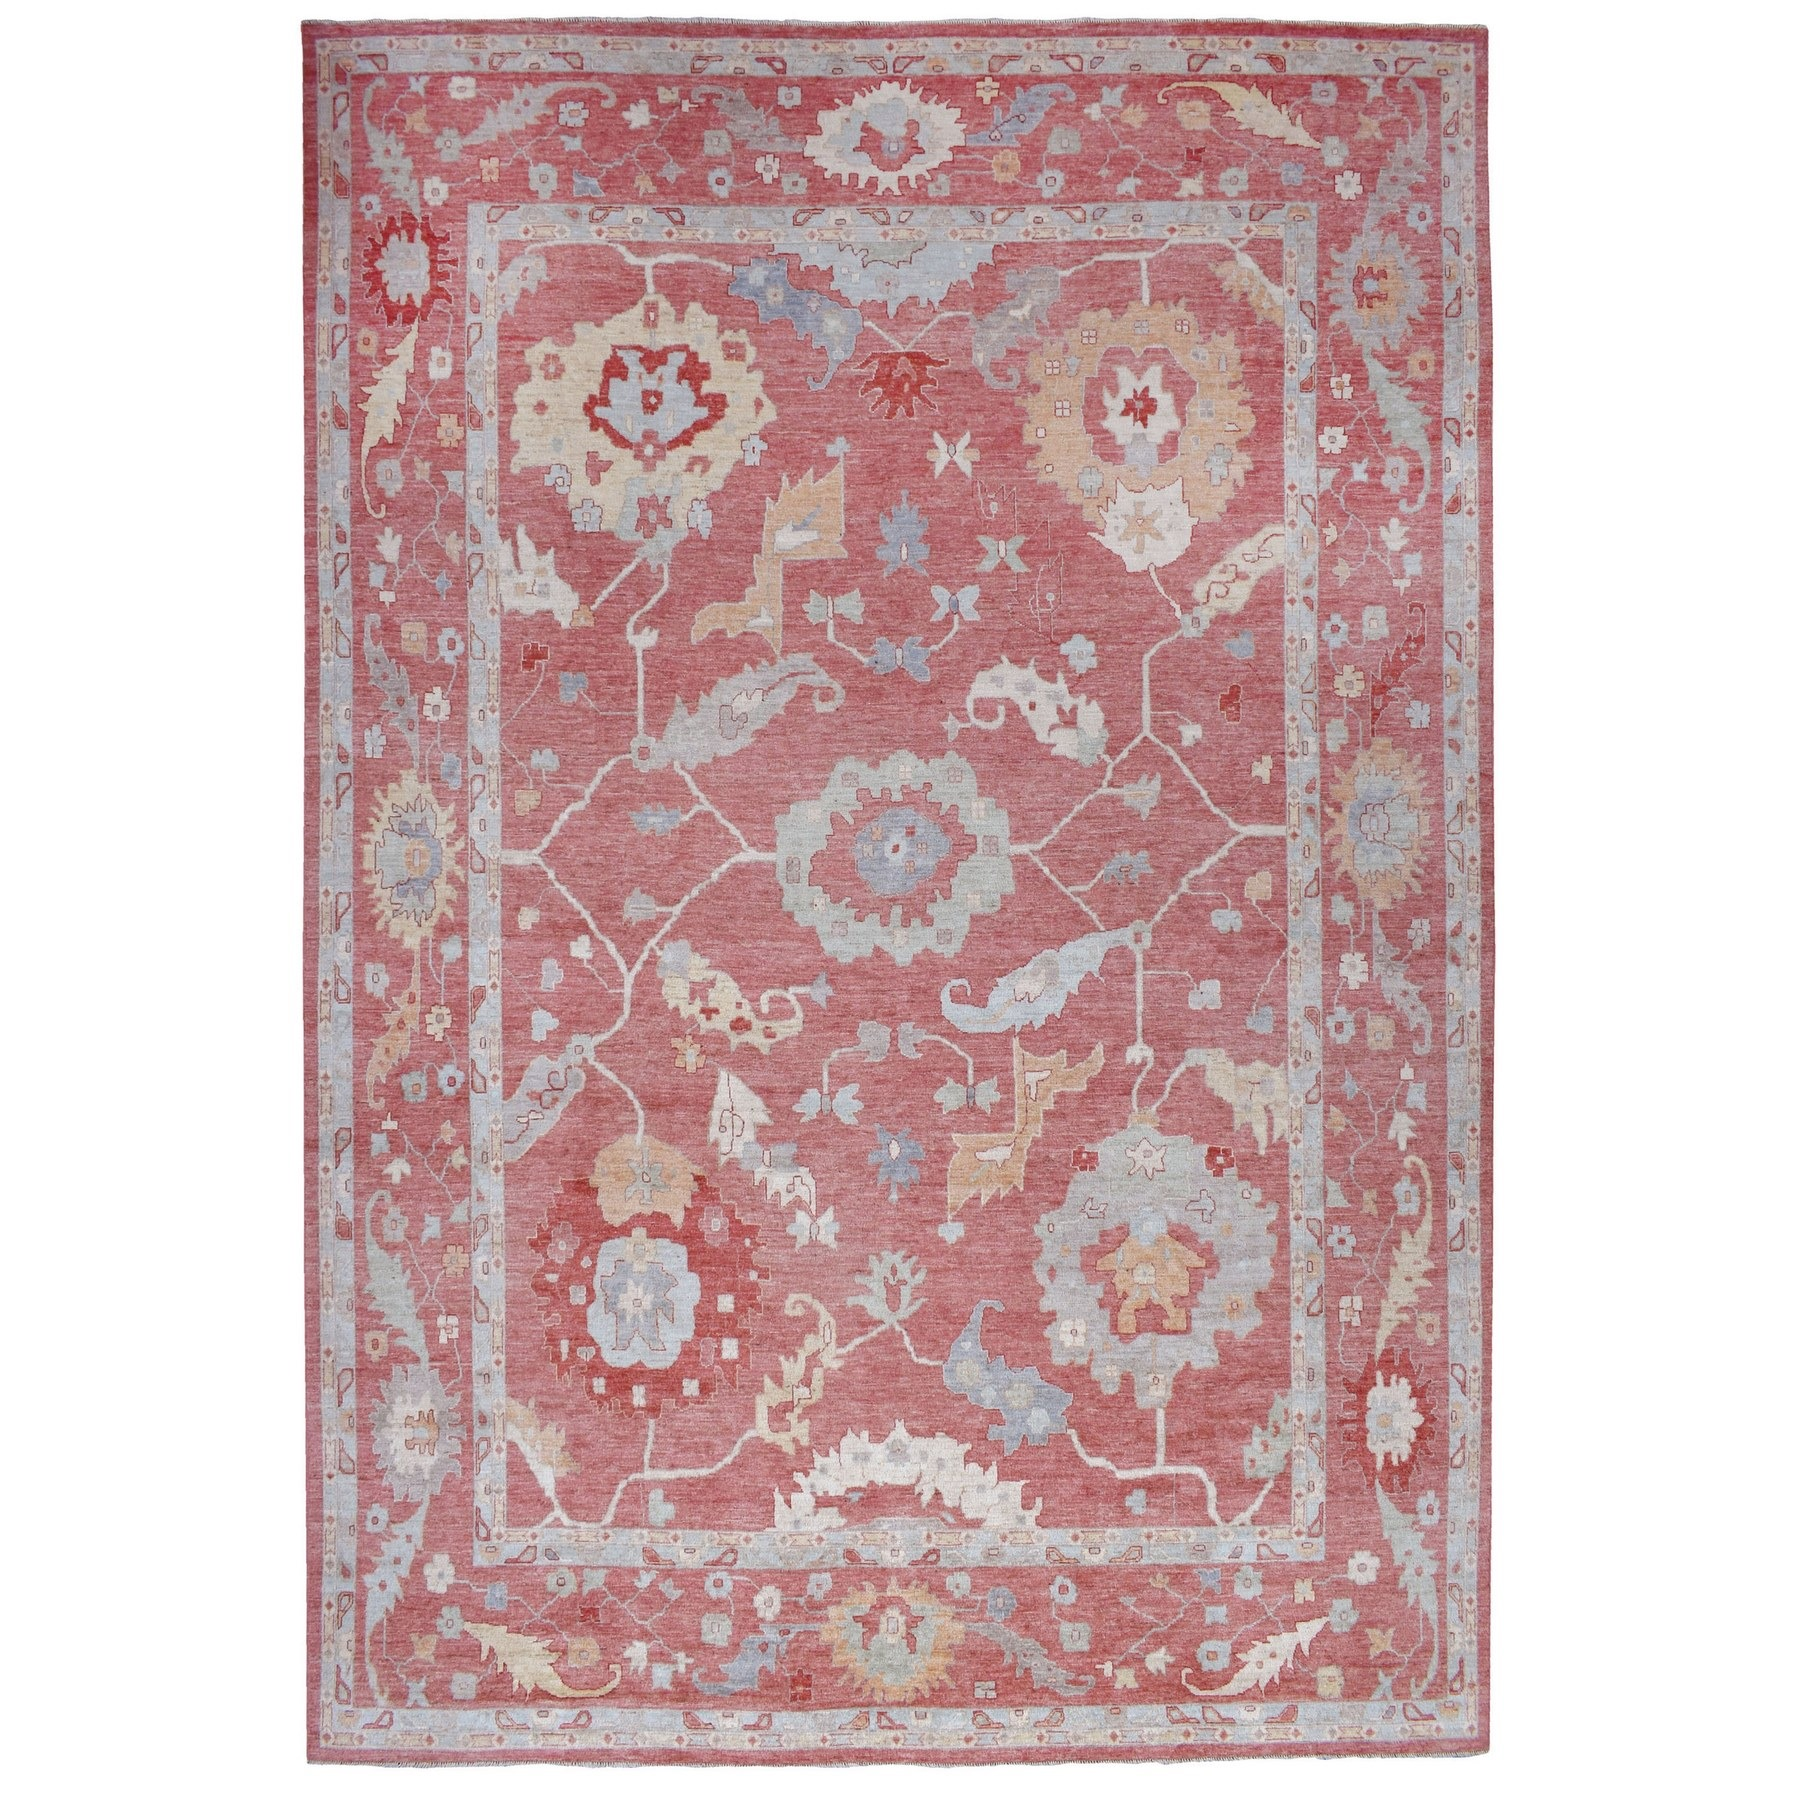 Agra And Turkish Collection Hand Knotted Red Rug No: 1136694